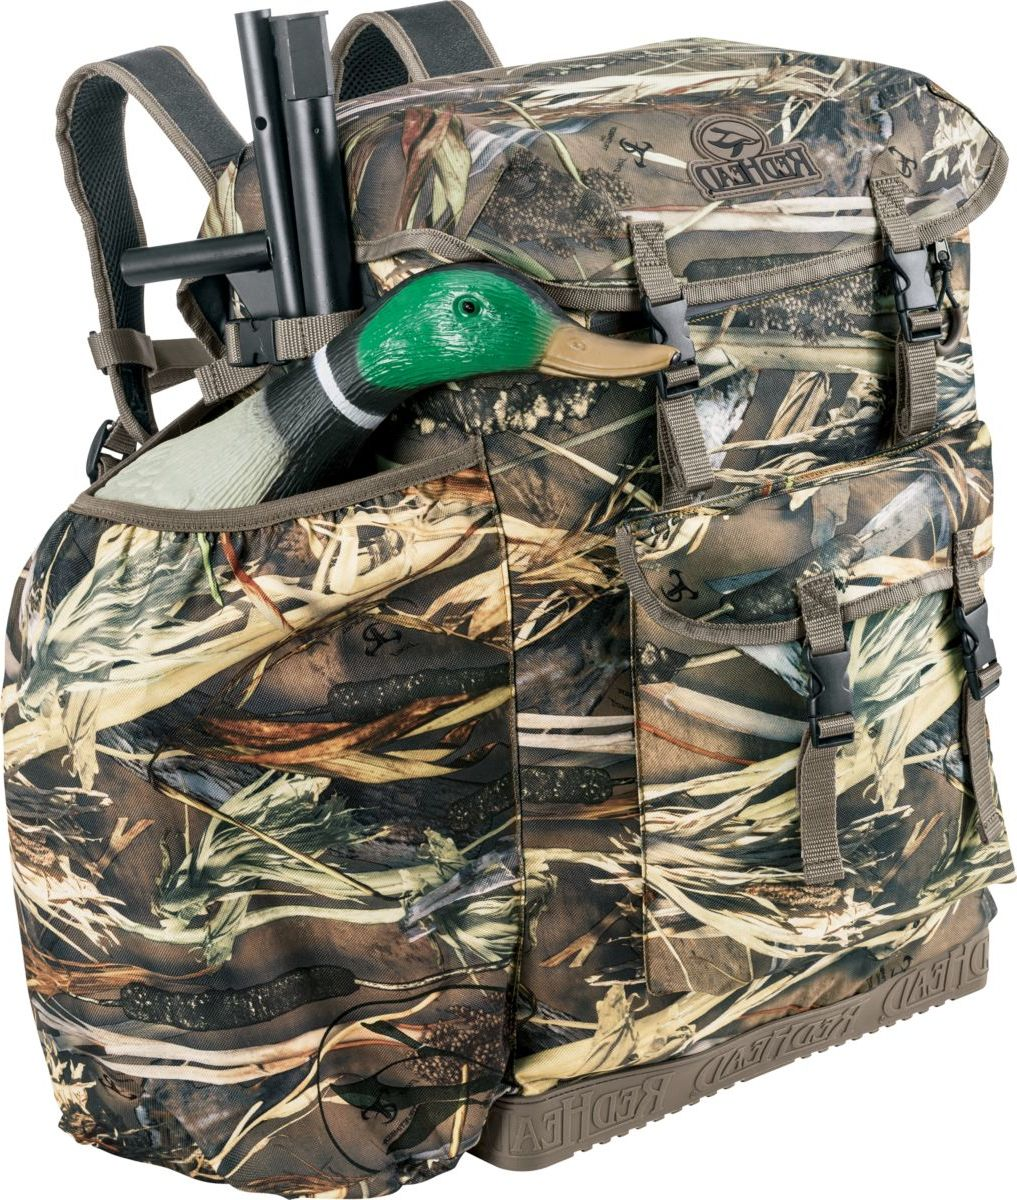 Cabela's Northern Flight® Waterfowler's Pack